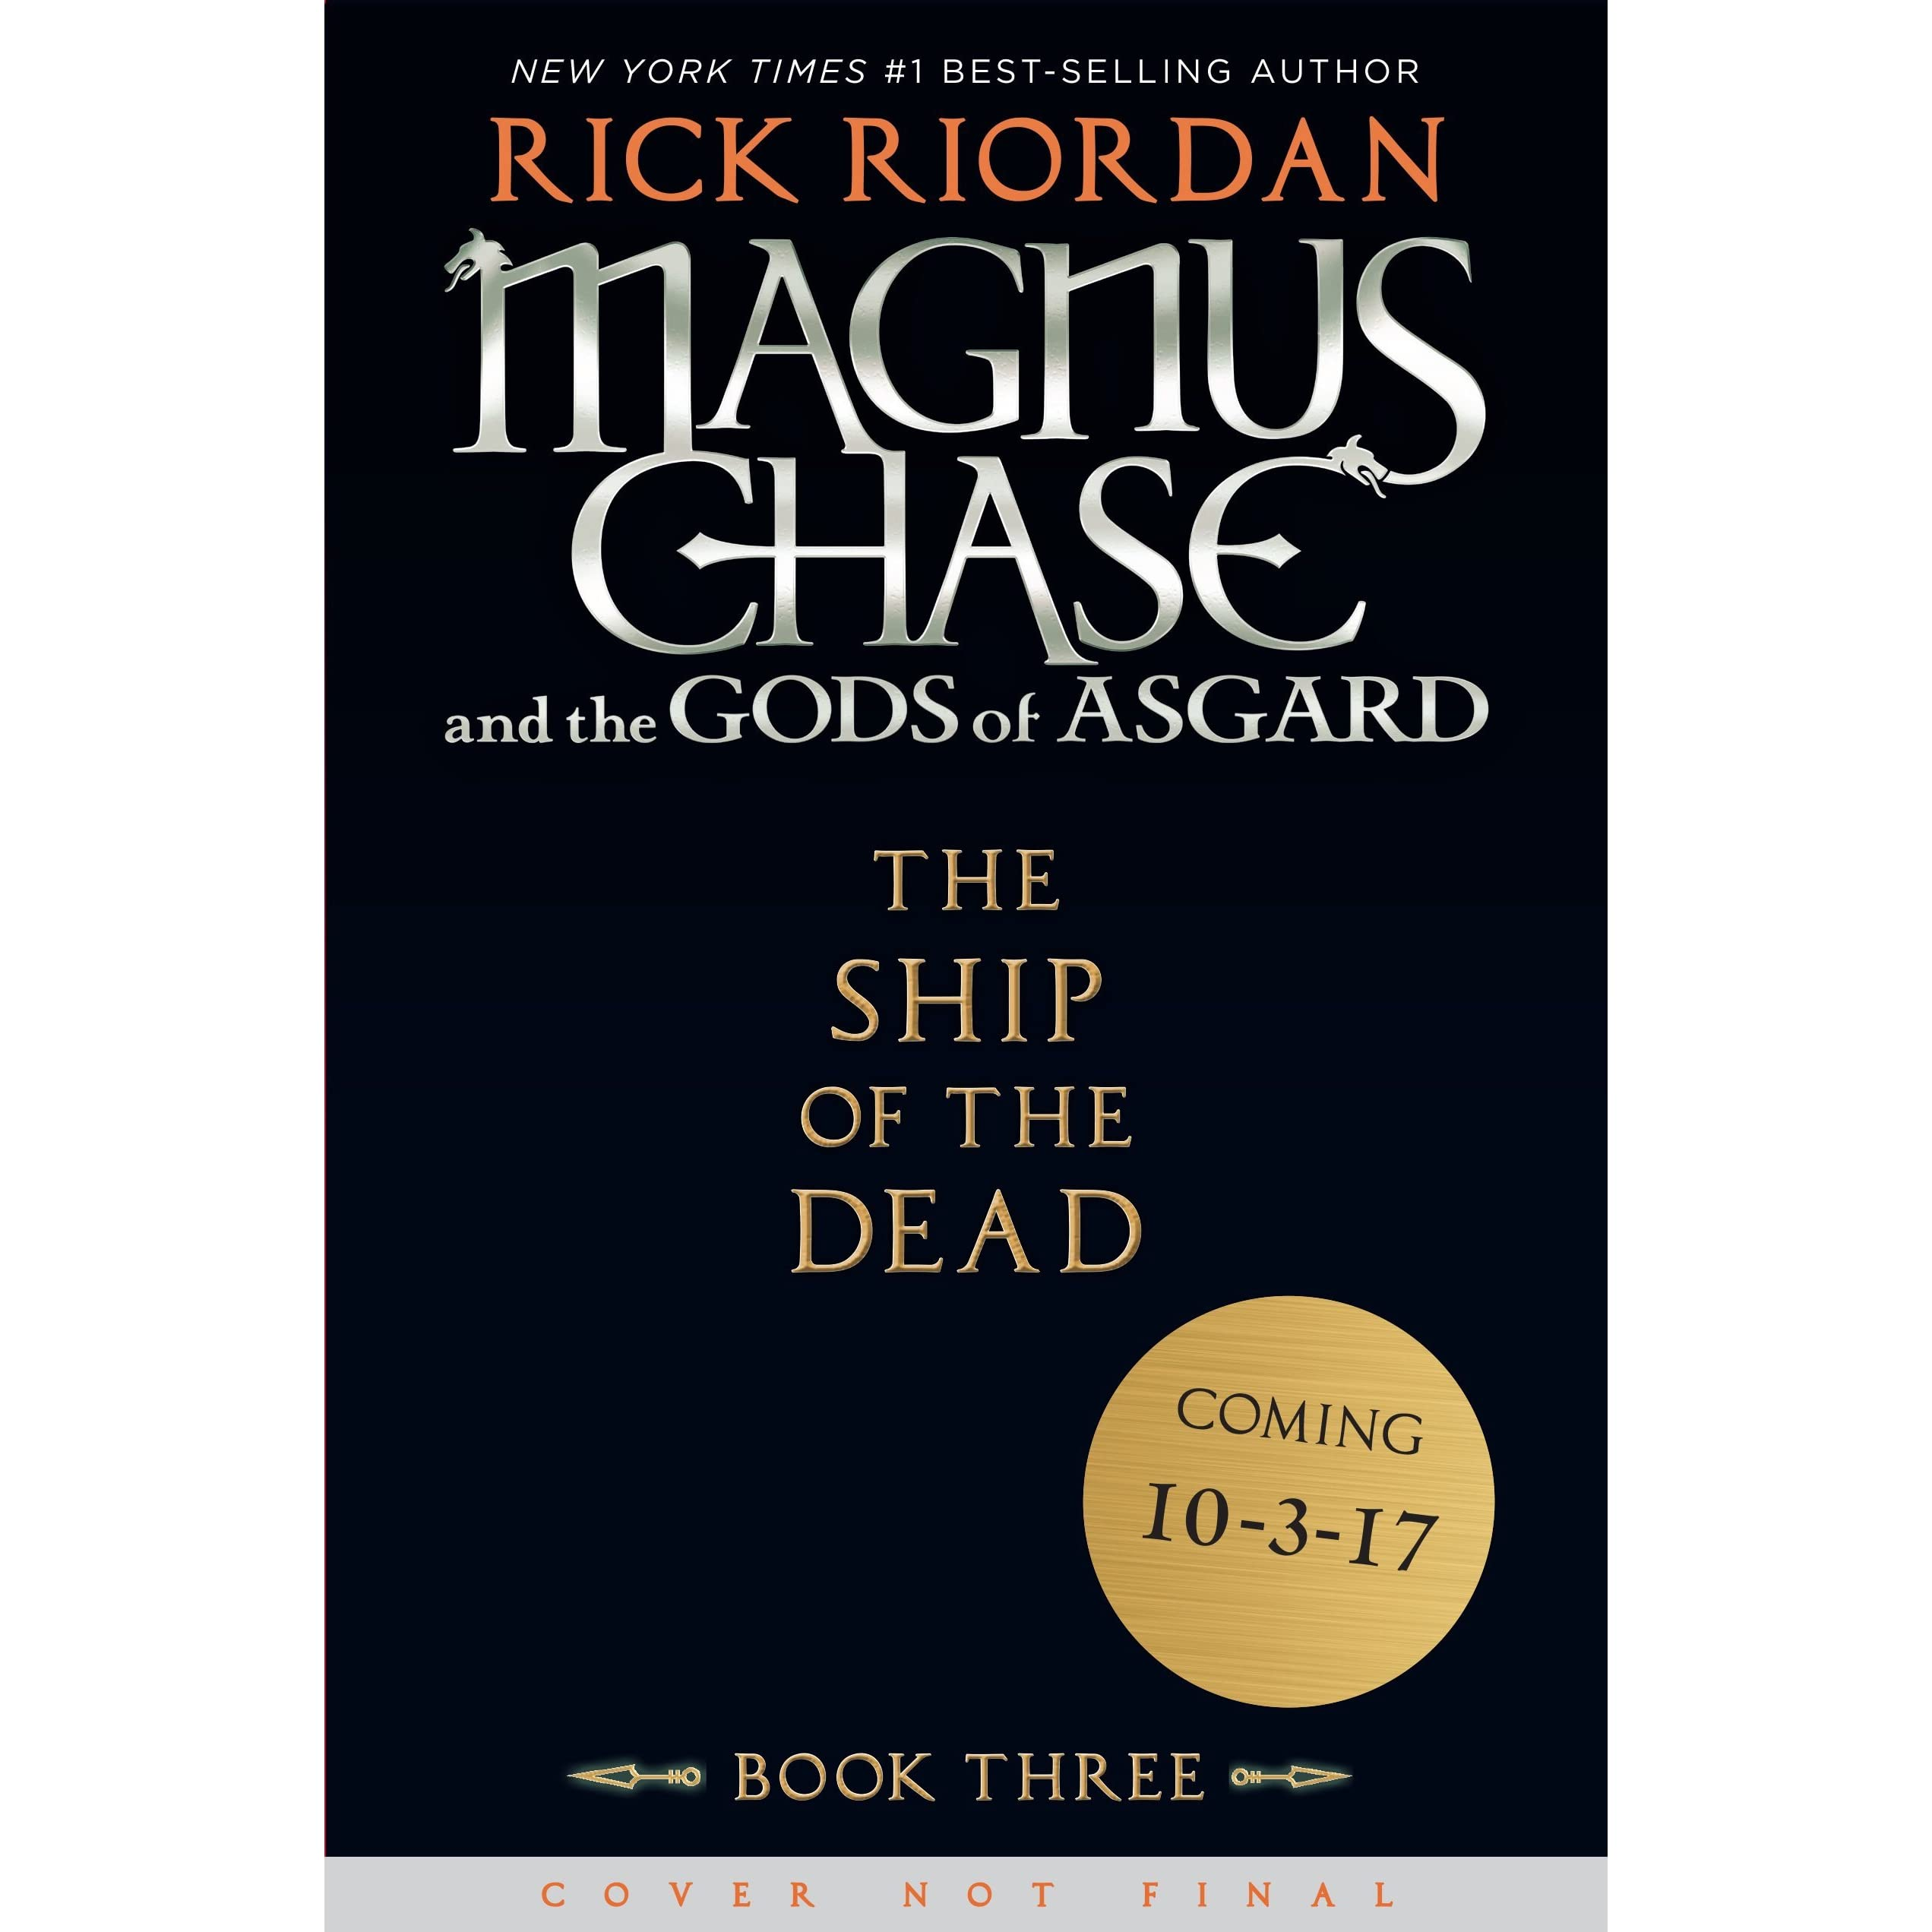 book 3 the ship of the dead